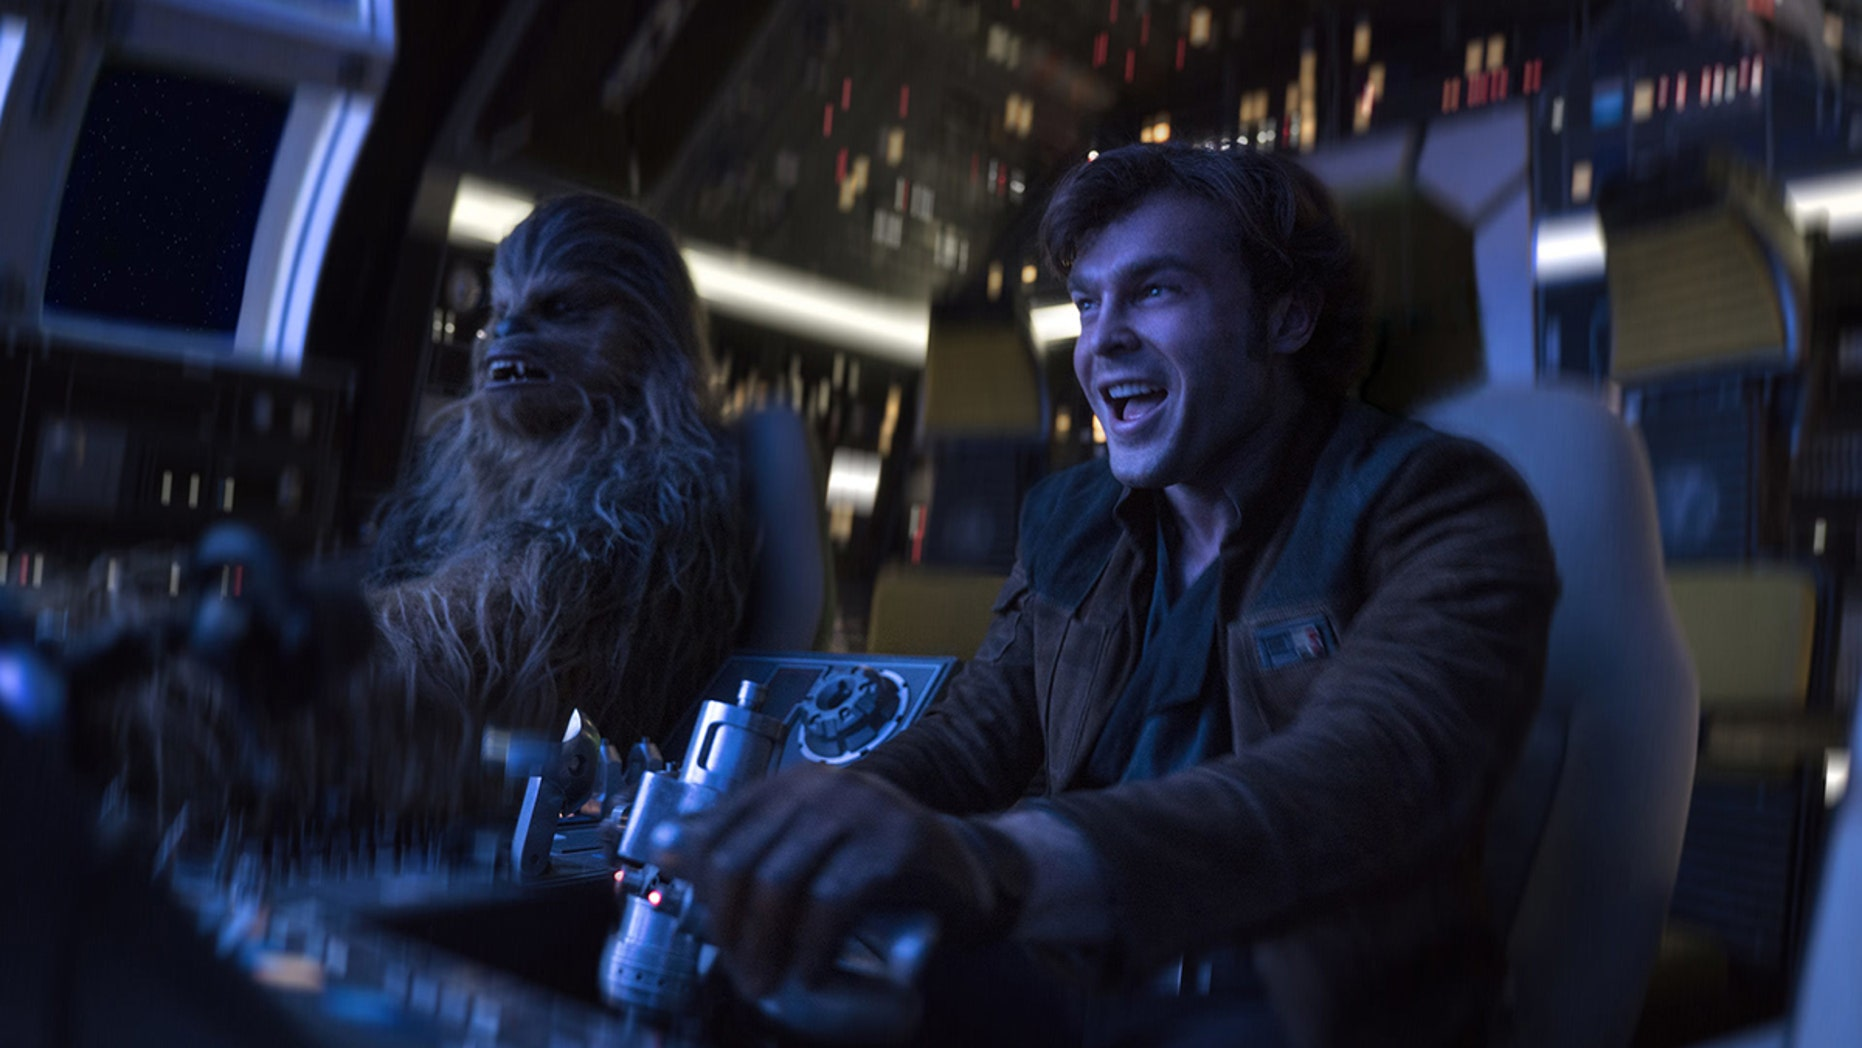 'Solo: A Star Wars Story' released its second trailer.